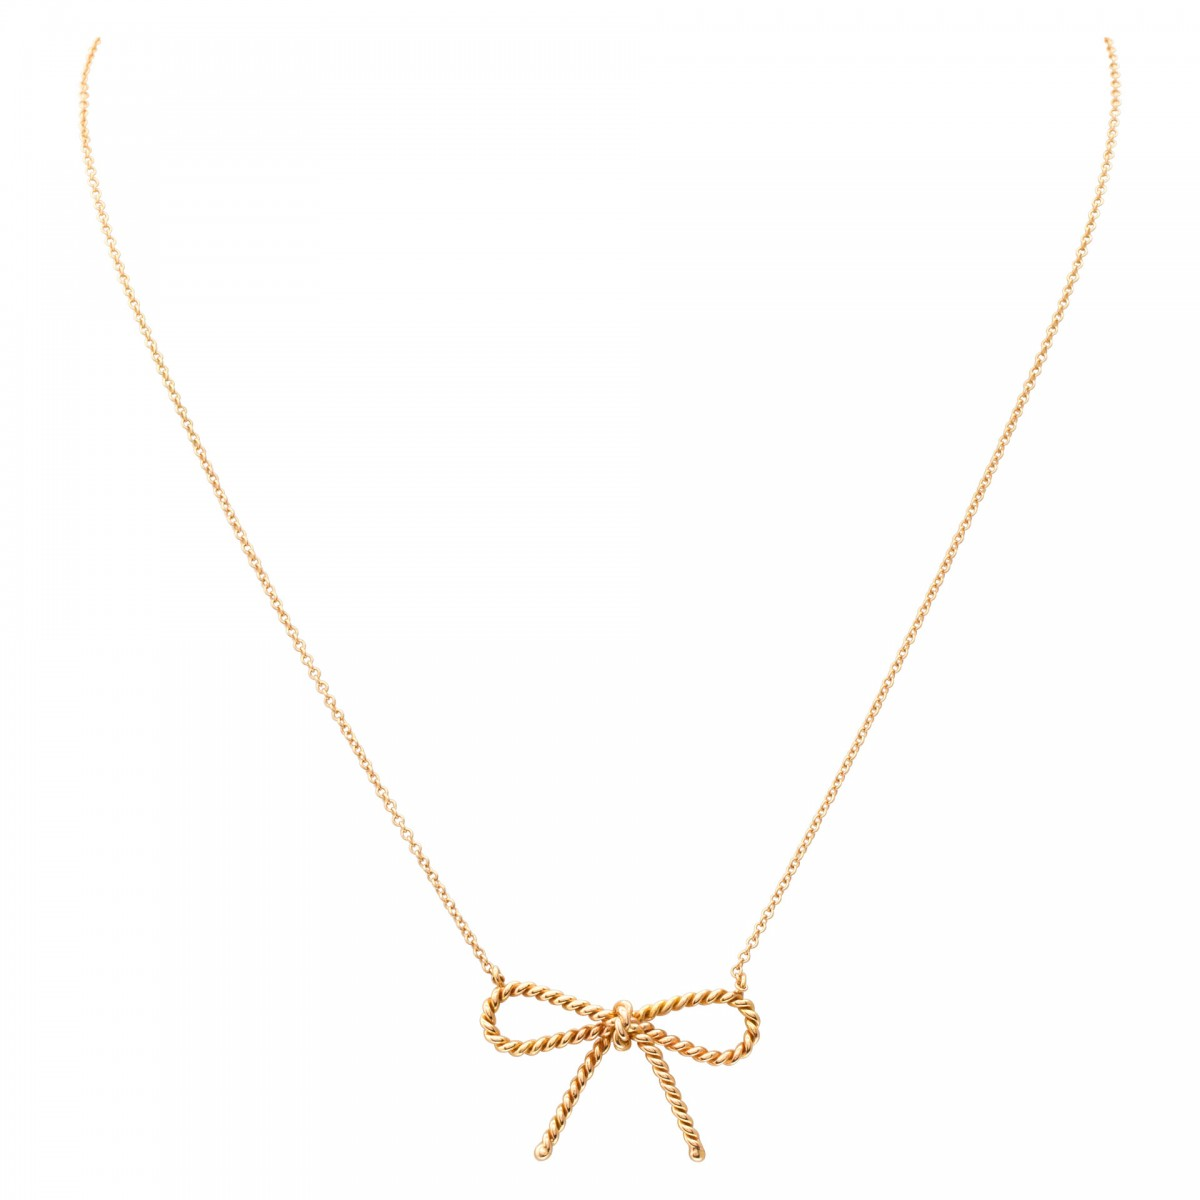 8eeed84b16be Tiffany   Co. Twisted Cable Wire Bow pendant necklace in 18k image ...